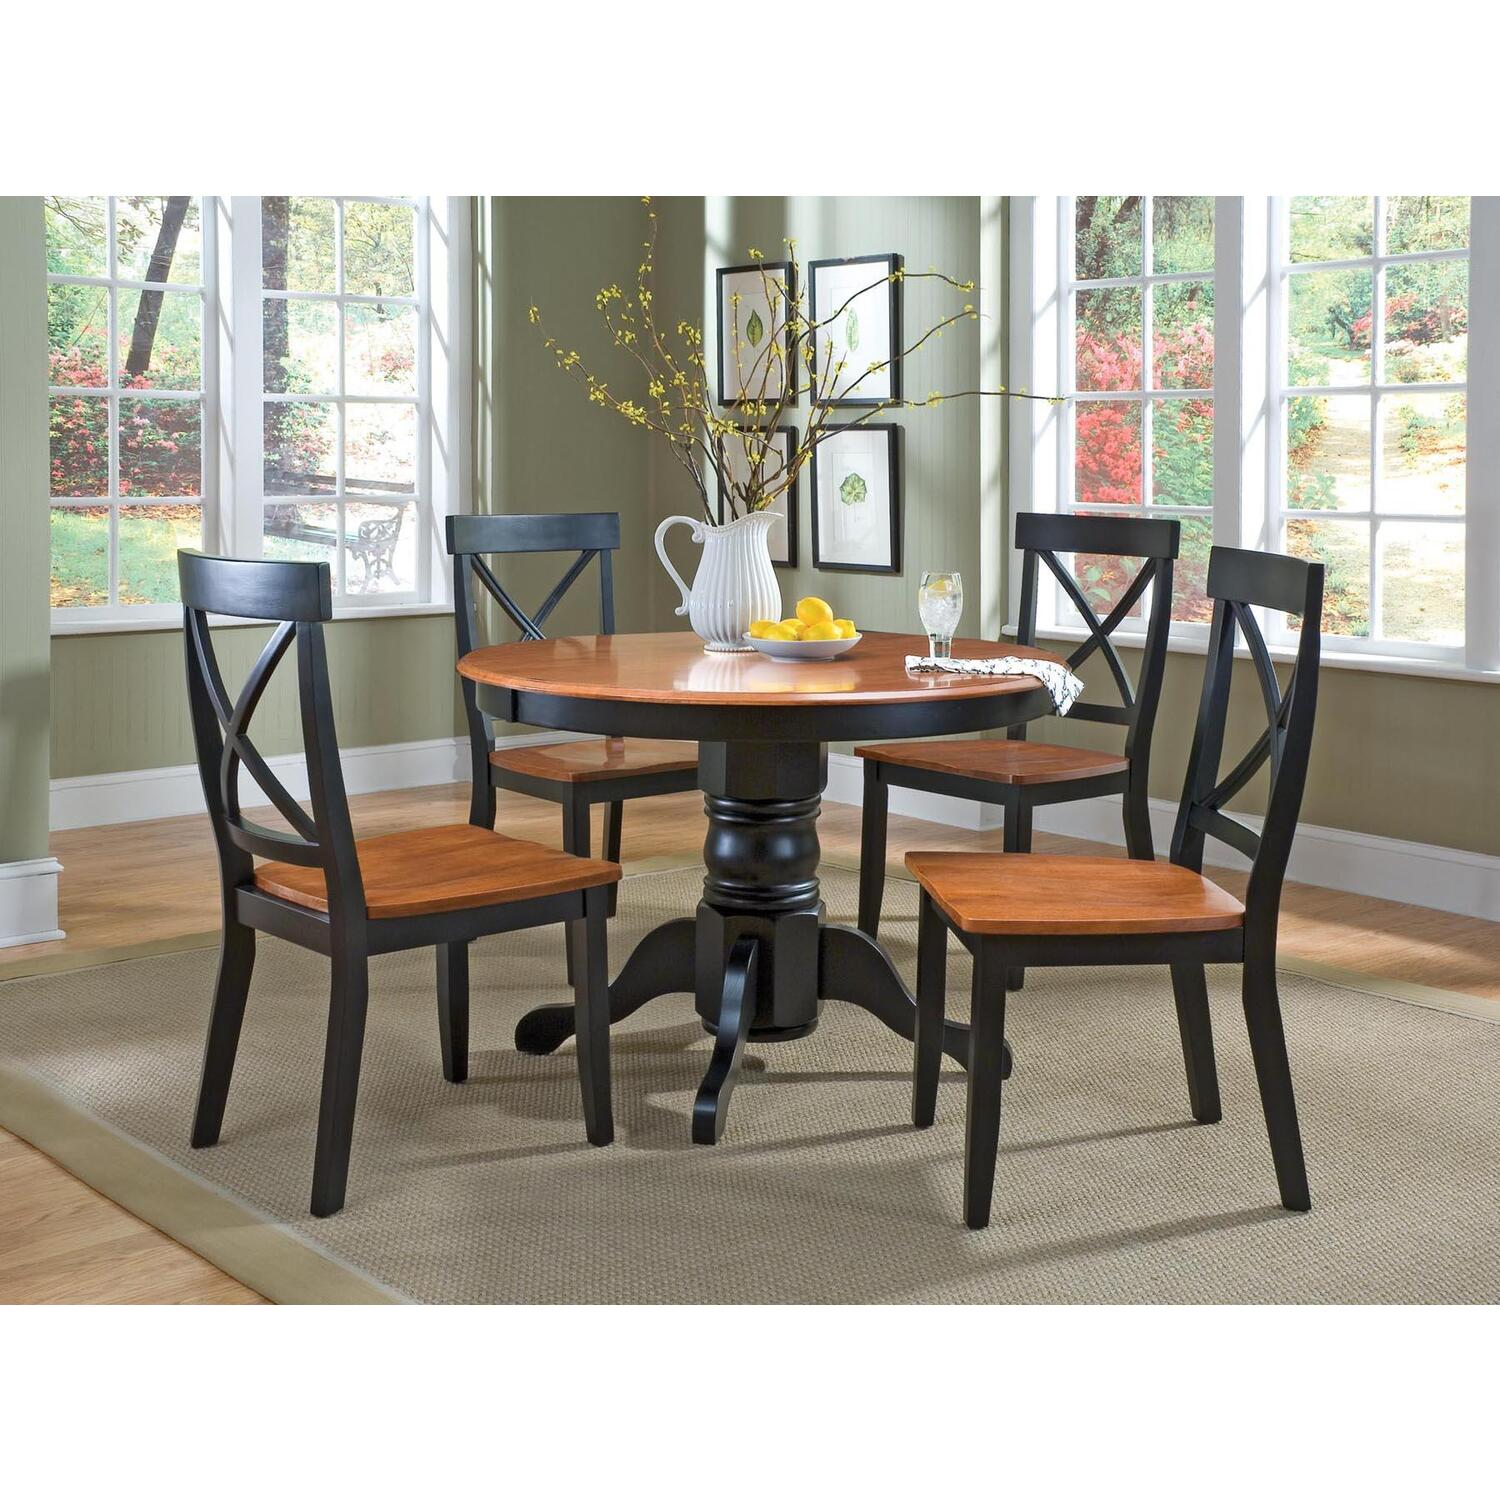 piece round pedestal dining set by oj commerce